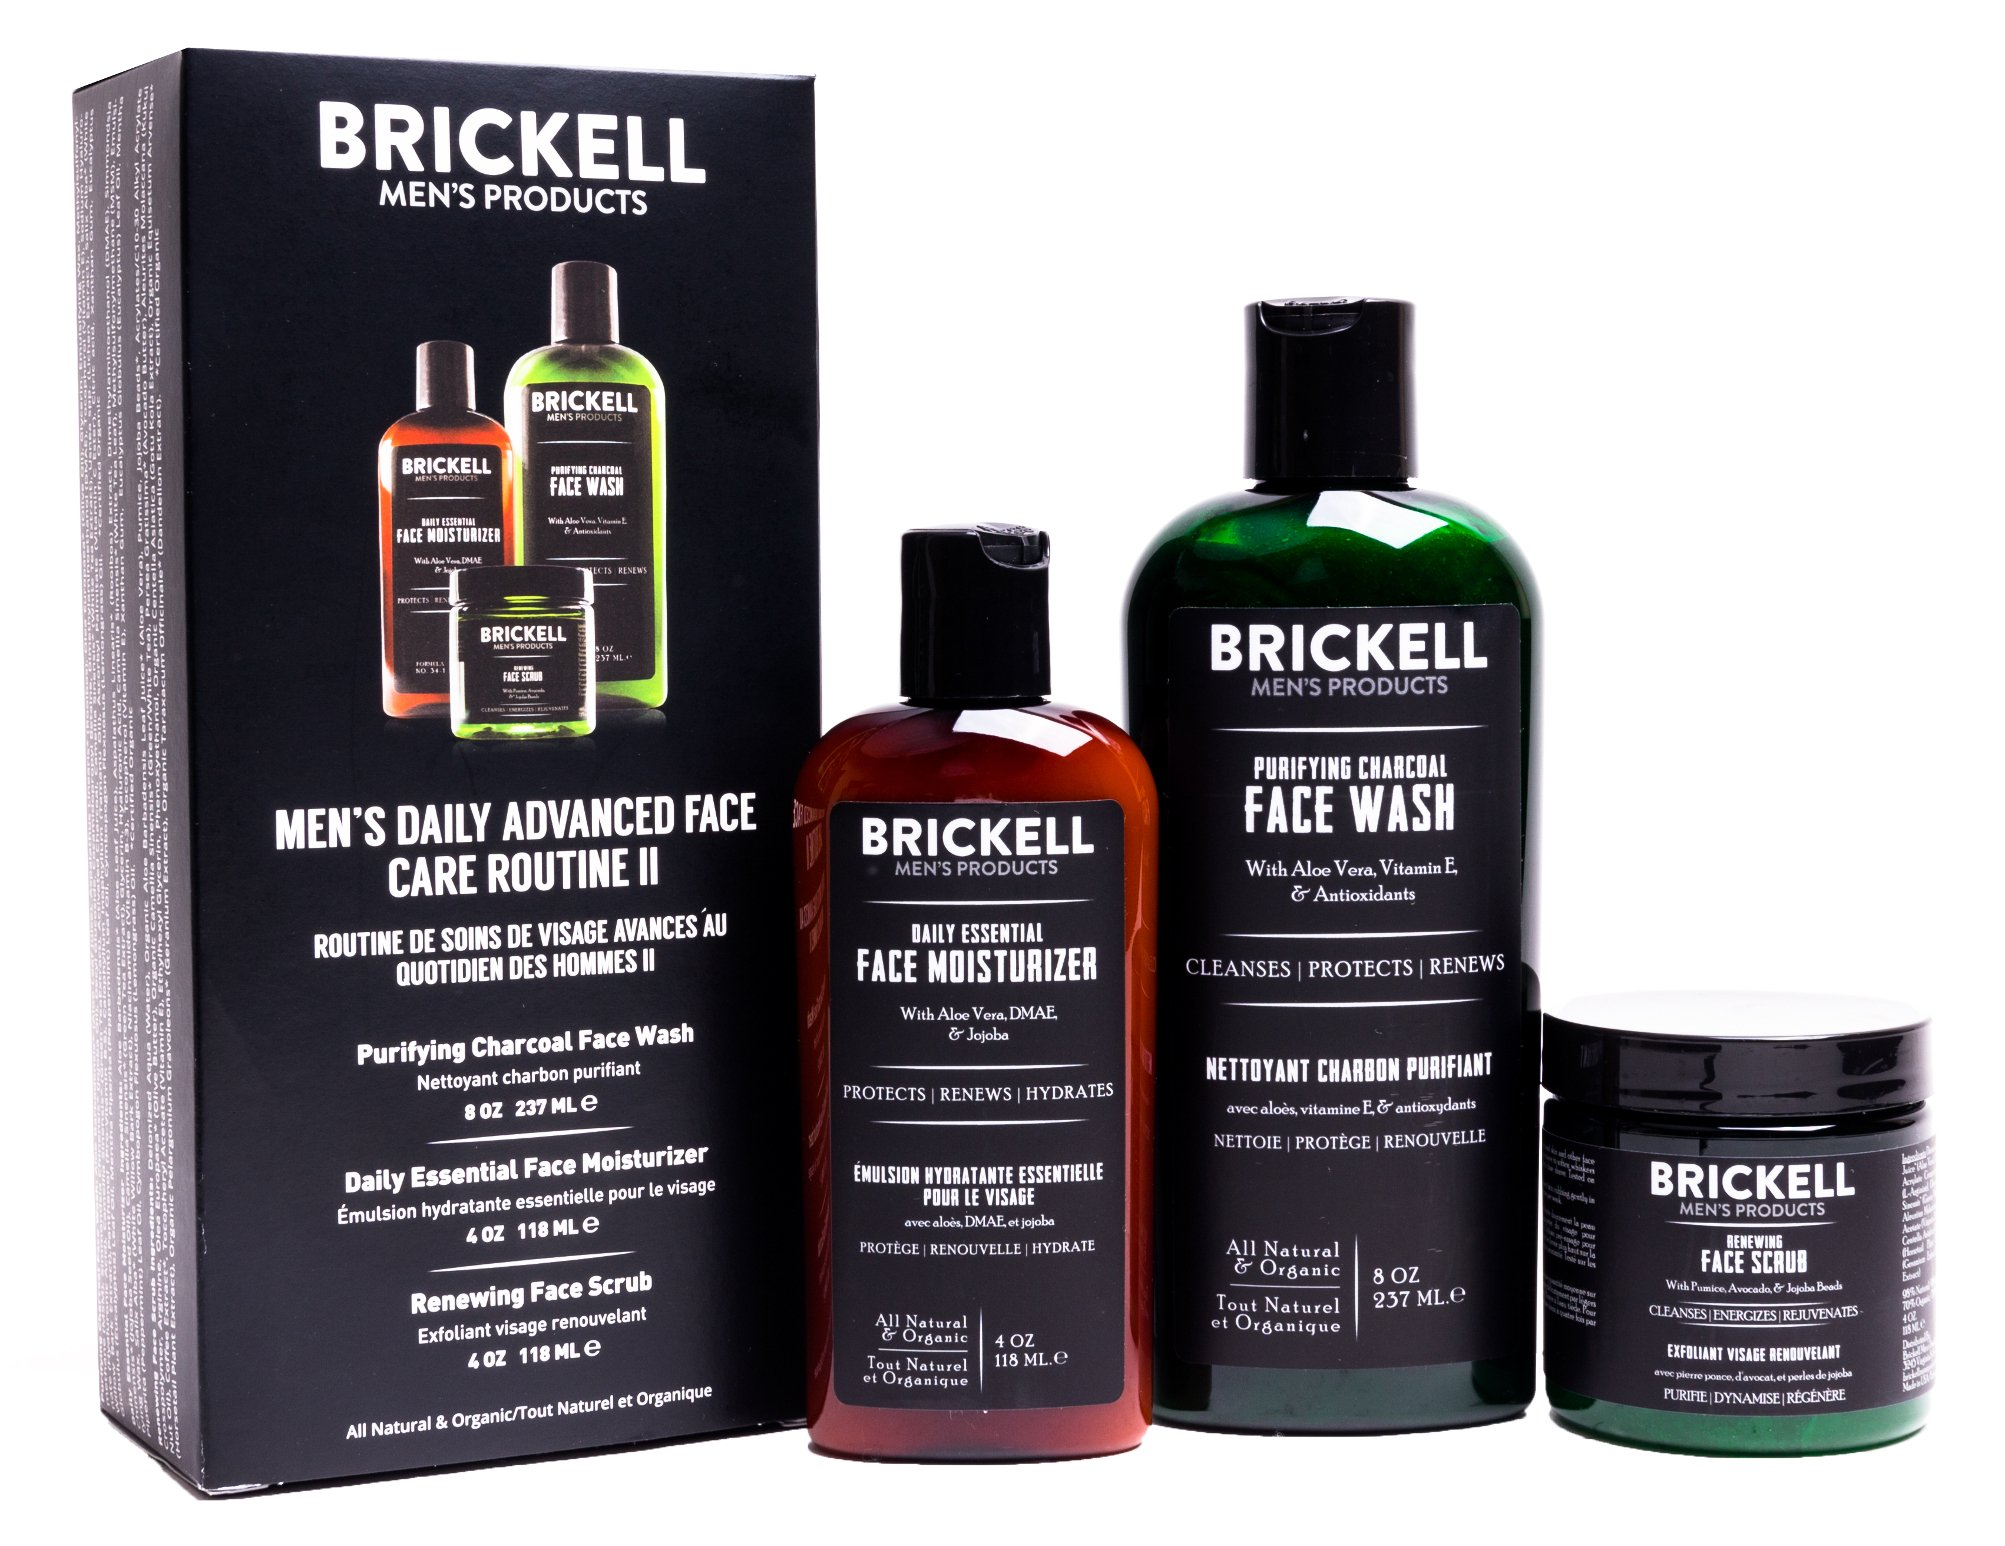 Brickell Men's Daily Advanced Face Care Routine II, Activated Charcoal Facial Cleanser, Face Scrub, Face Moisturizer Lotion, Natural and Organic, Scented by Brickell Men's Products